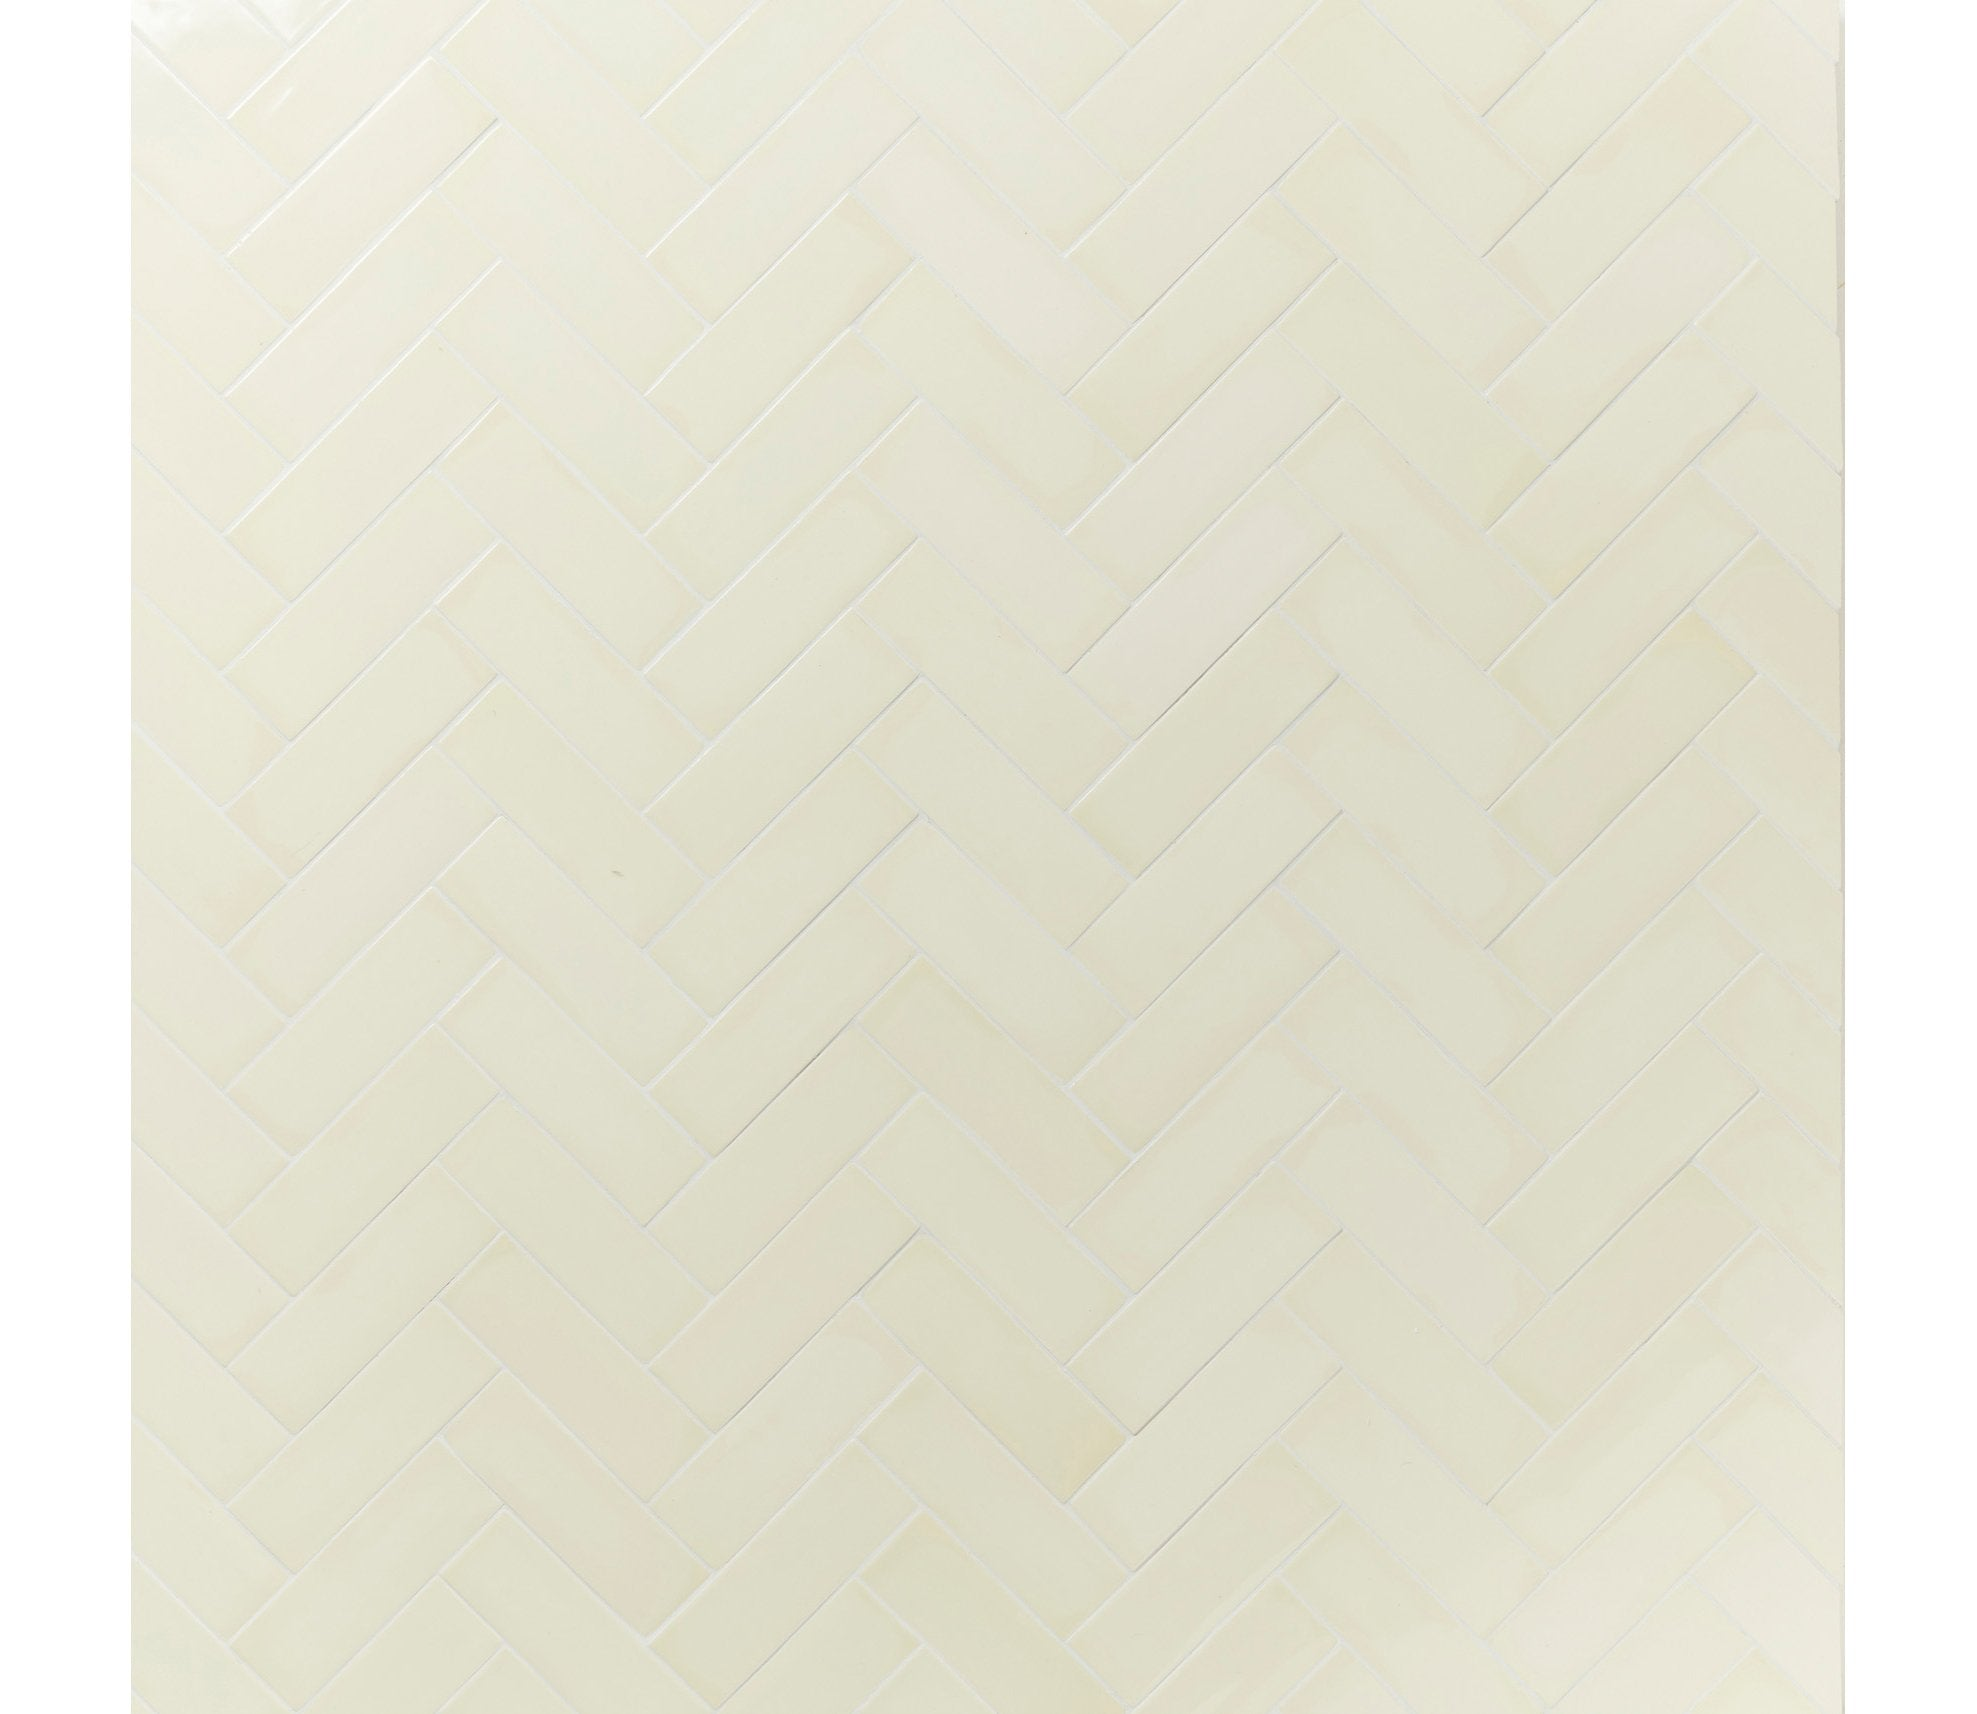 Hanley Traditional Tiles Product Image 29